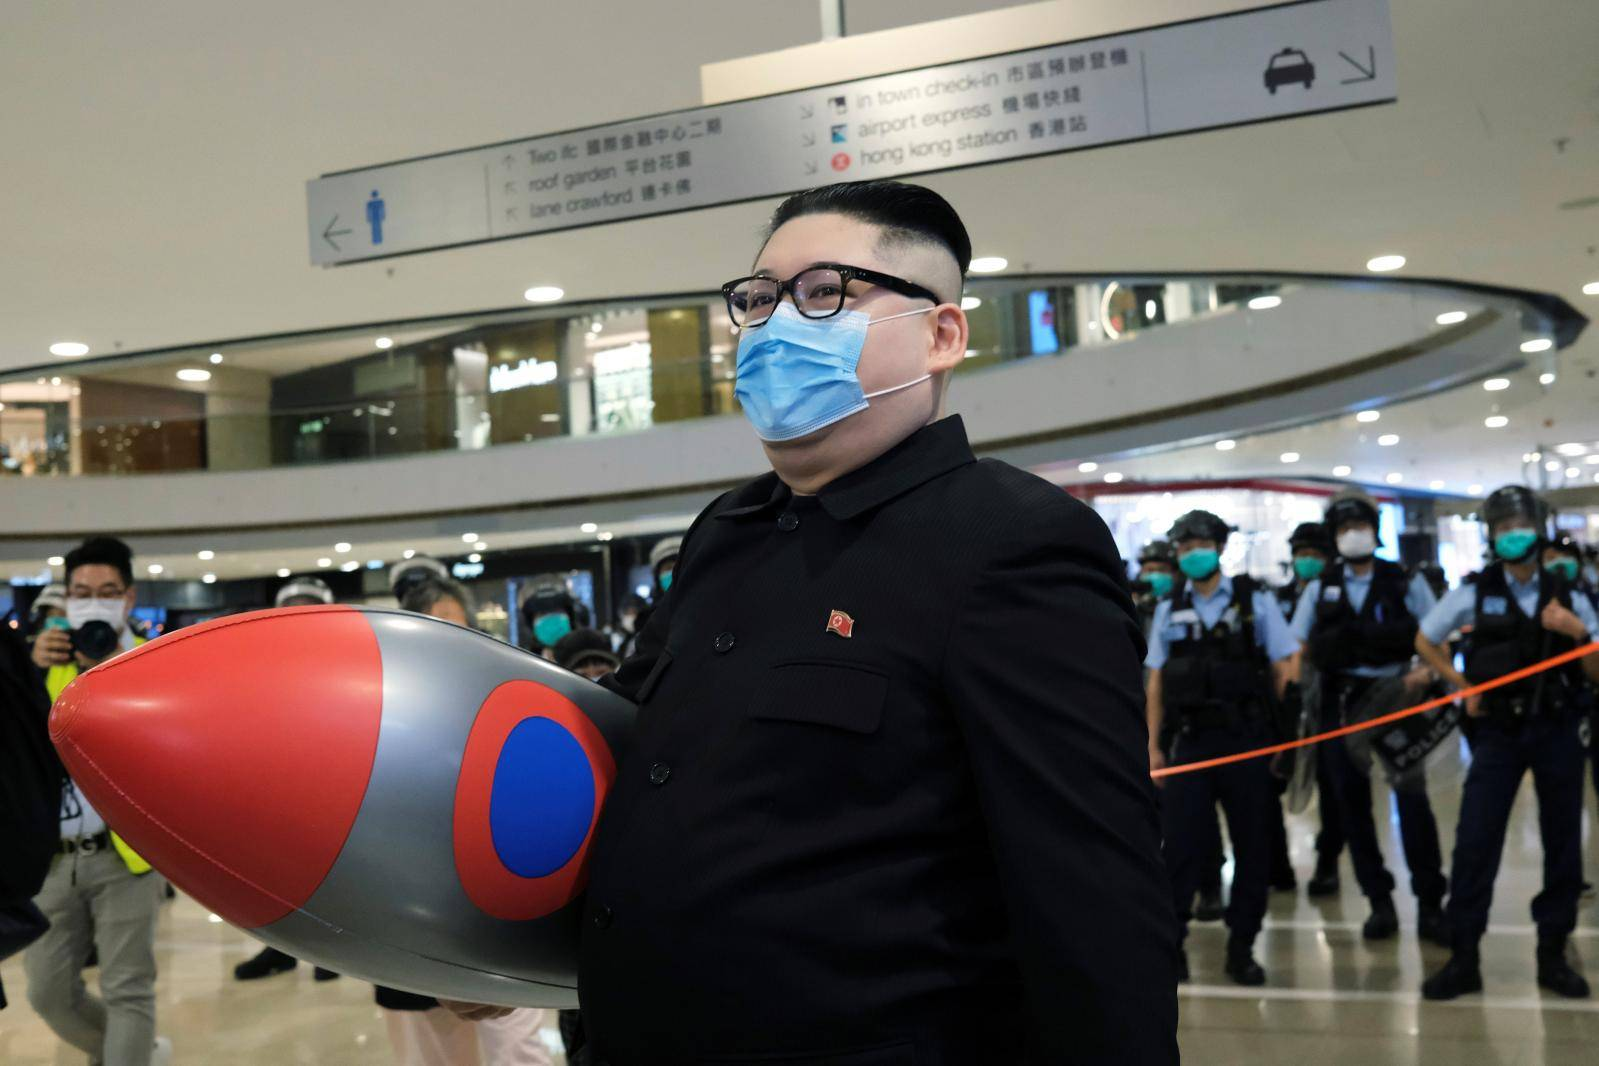 Howard X, an Australian-Chinese impersonating North Korean leader Kim Jong-un walks near riot police as officers clear the crowd in a mall to avoid the spread of the coronavirus disease (COVID-19) during an anti-government protest in Hong Kong